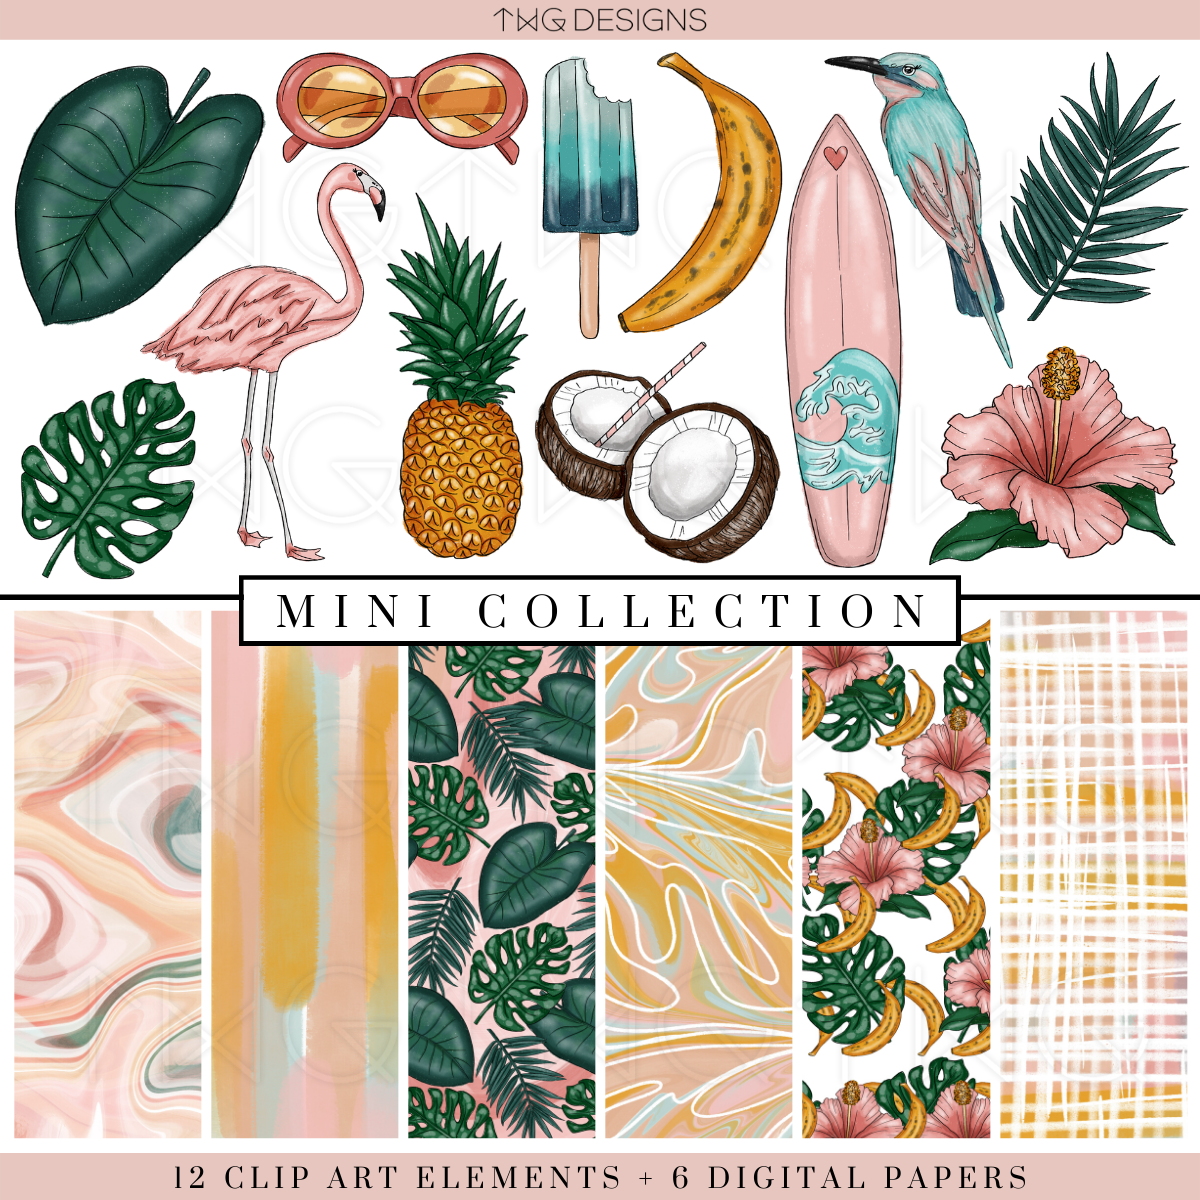 So Tropical Mini Collection